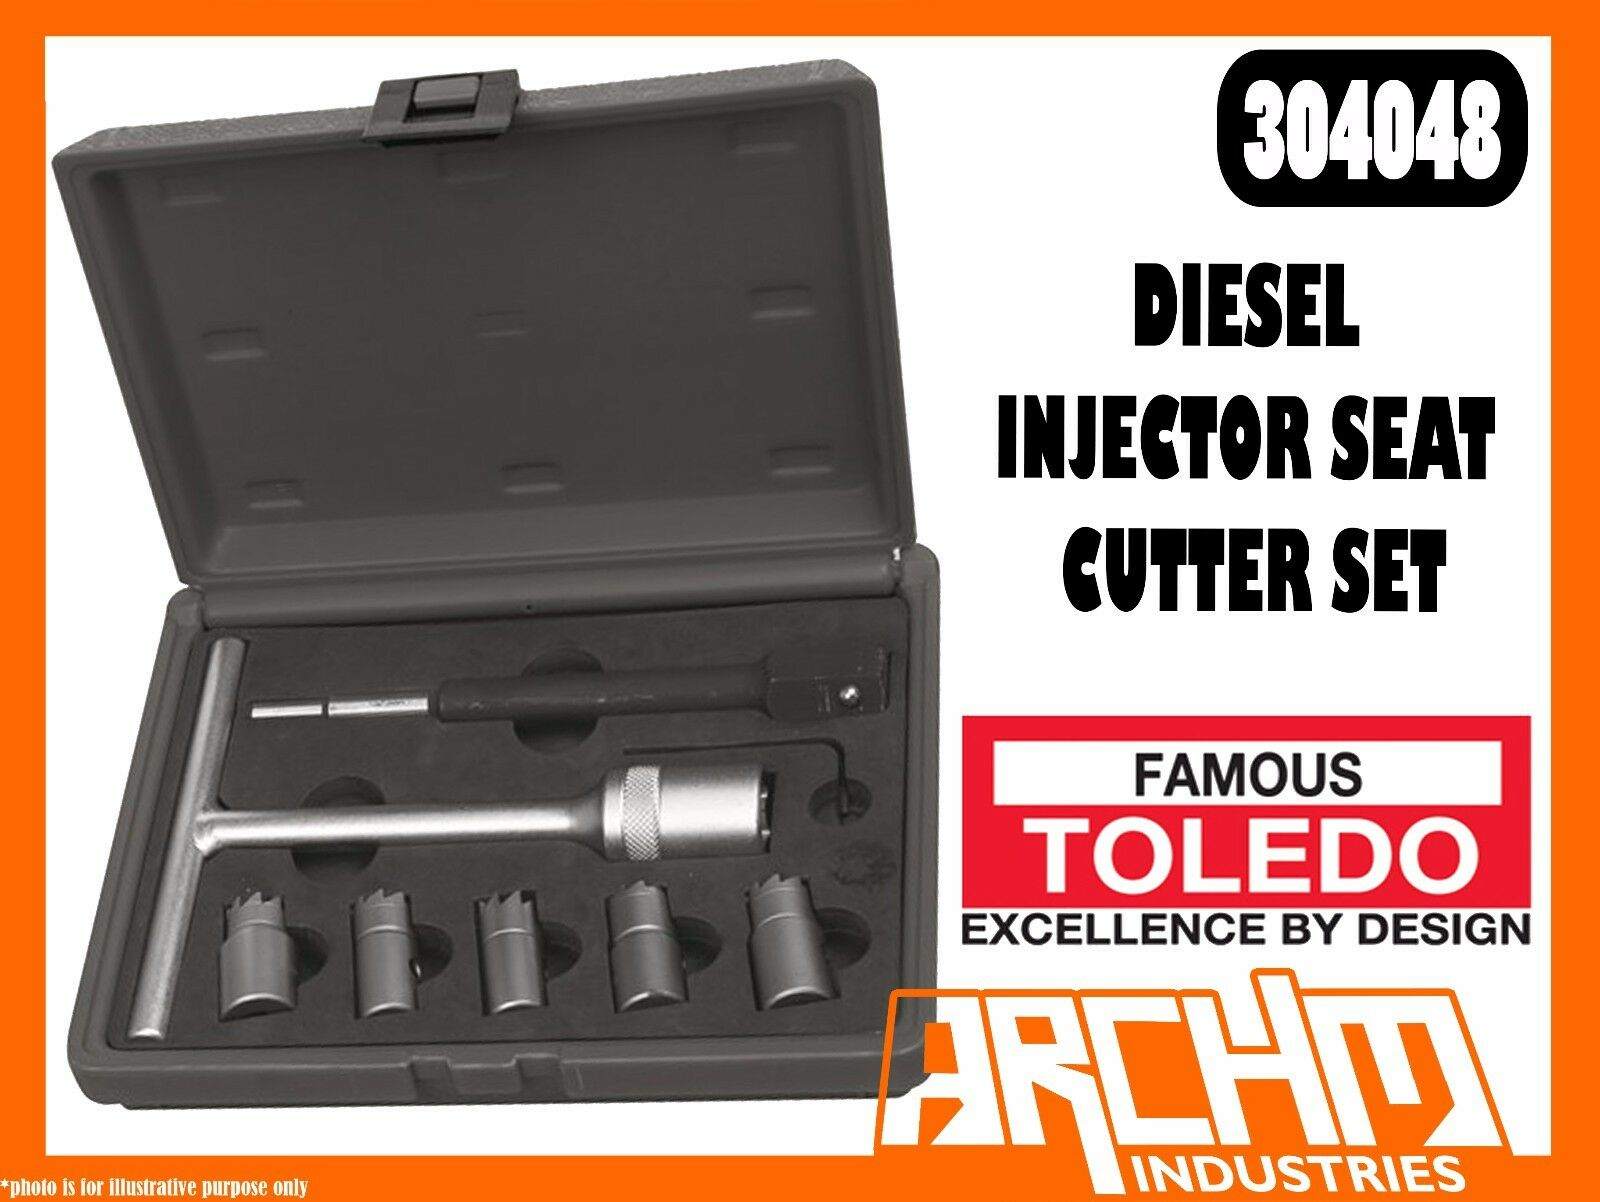 TOLEDO 304048 - DIESEL INJECTOR SEAT CUTTER SET - CYLINDER HEAD CLEANING